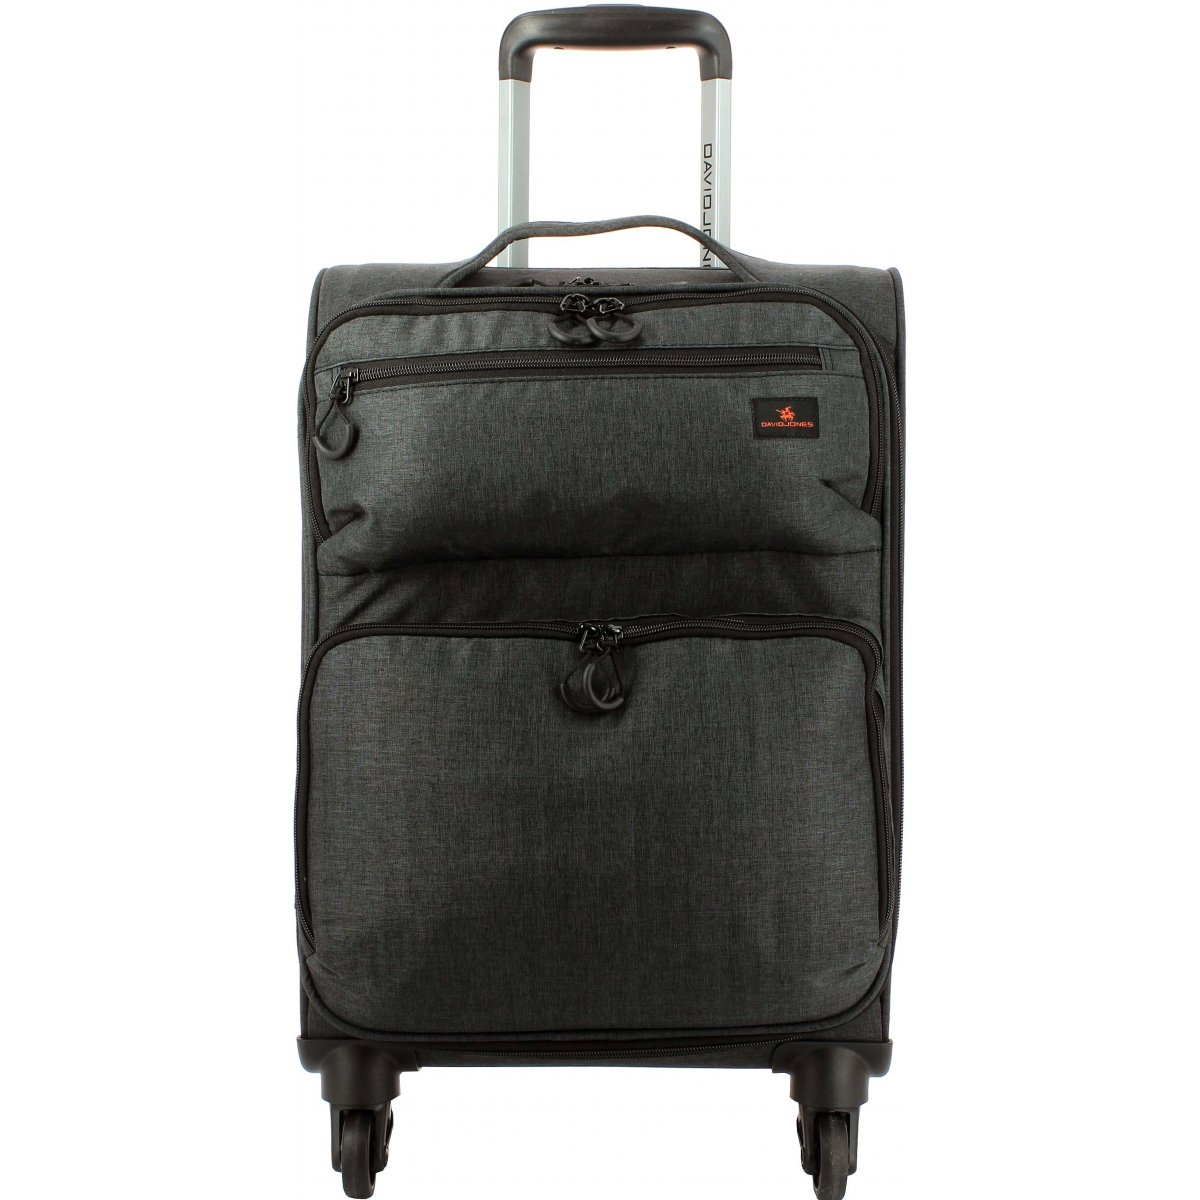 valise cabine souple david jones 55cm ba50311p couleur. Black Bedroom Furniture Sets. Home Design Ideas